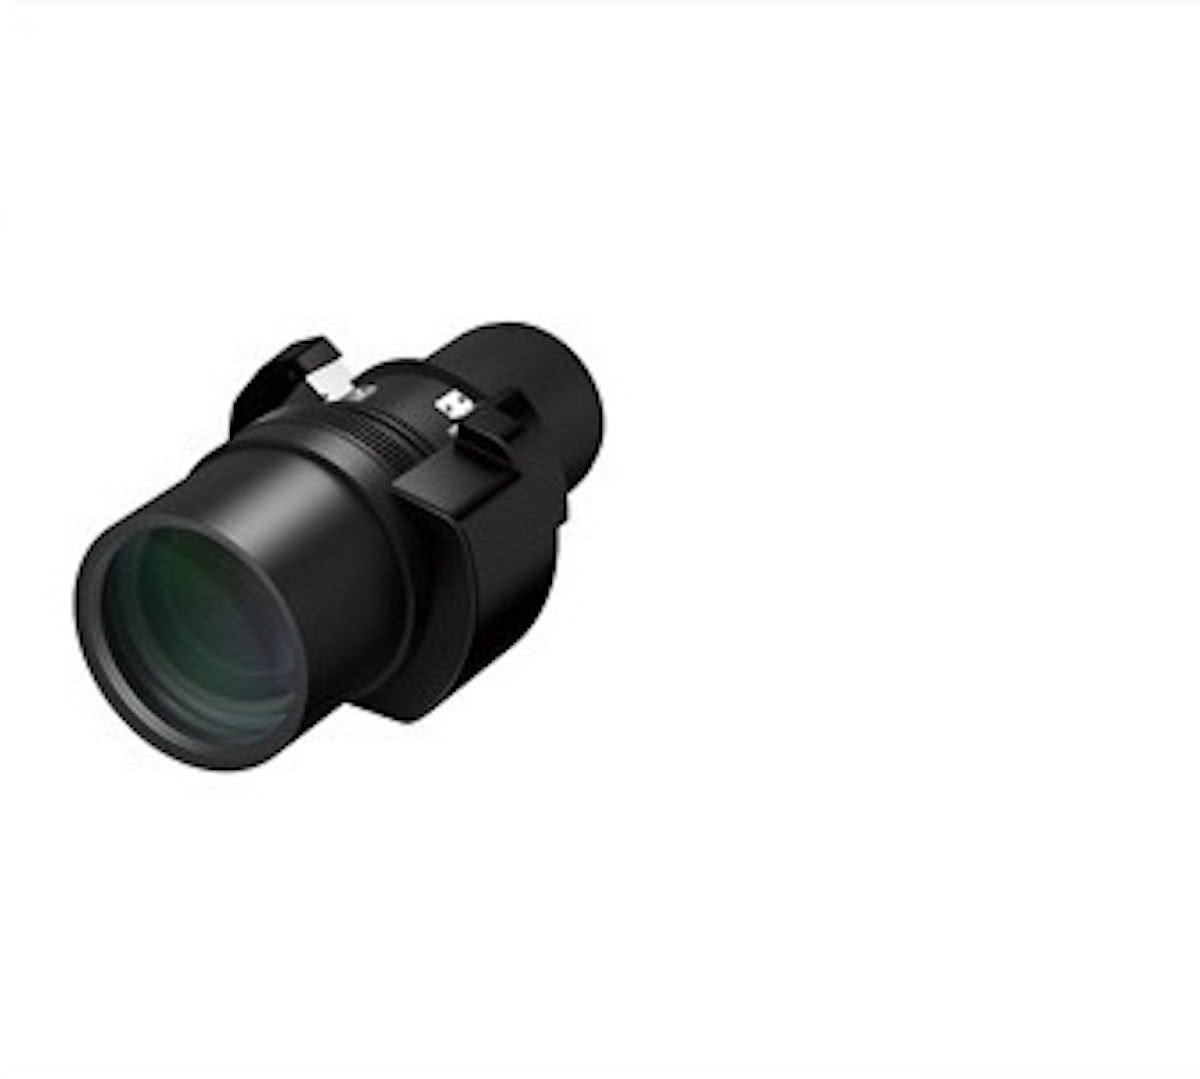 Lens - ELPLM11 - Mid throw 4 - G7000/L1000 series